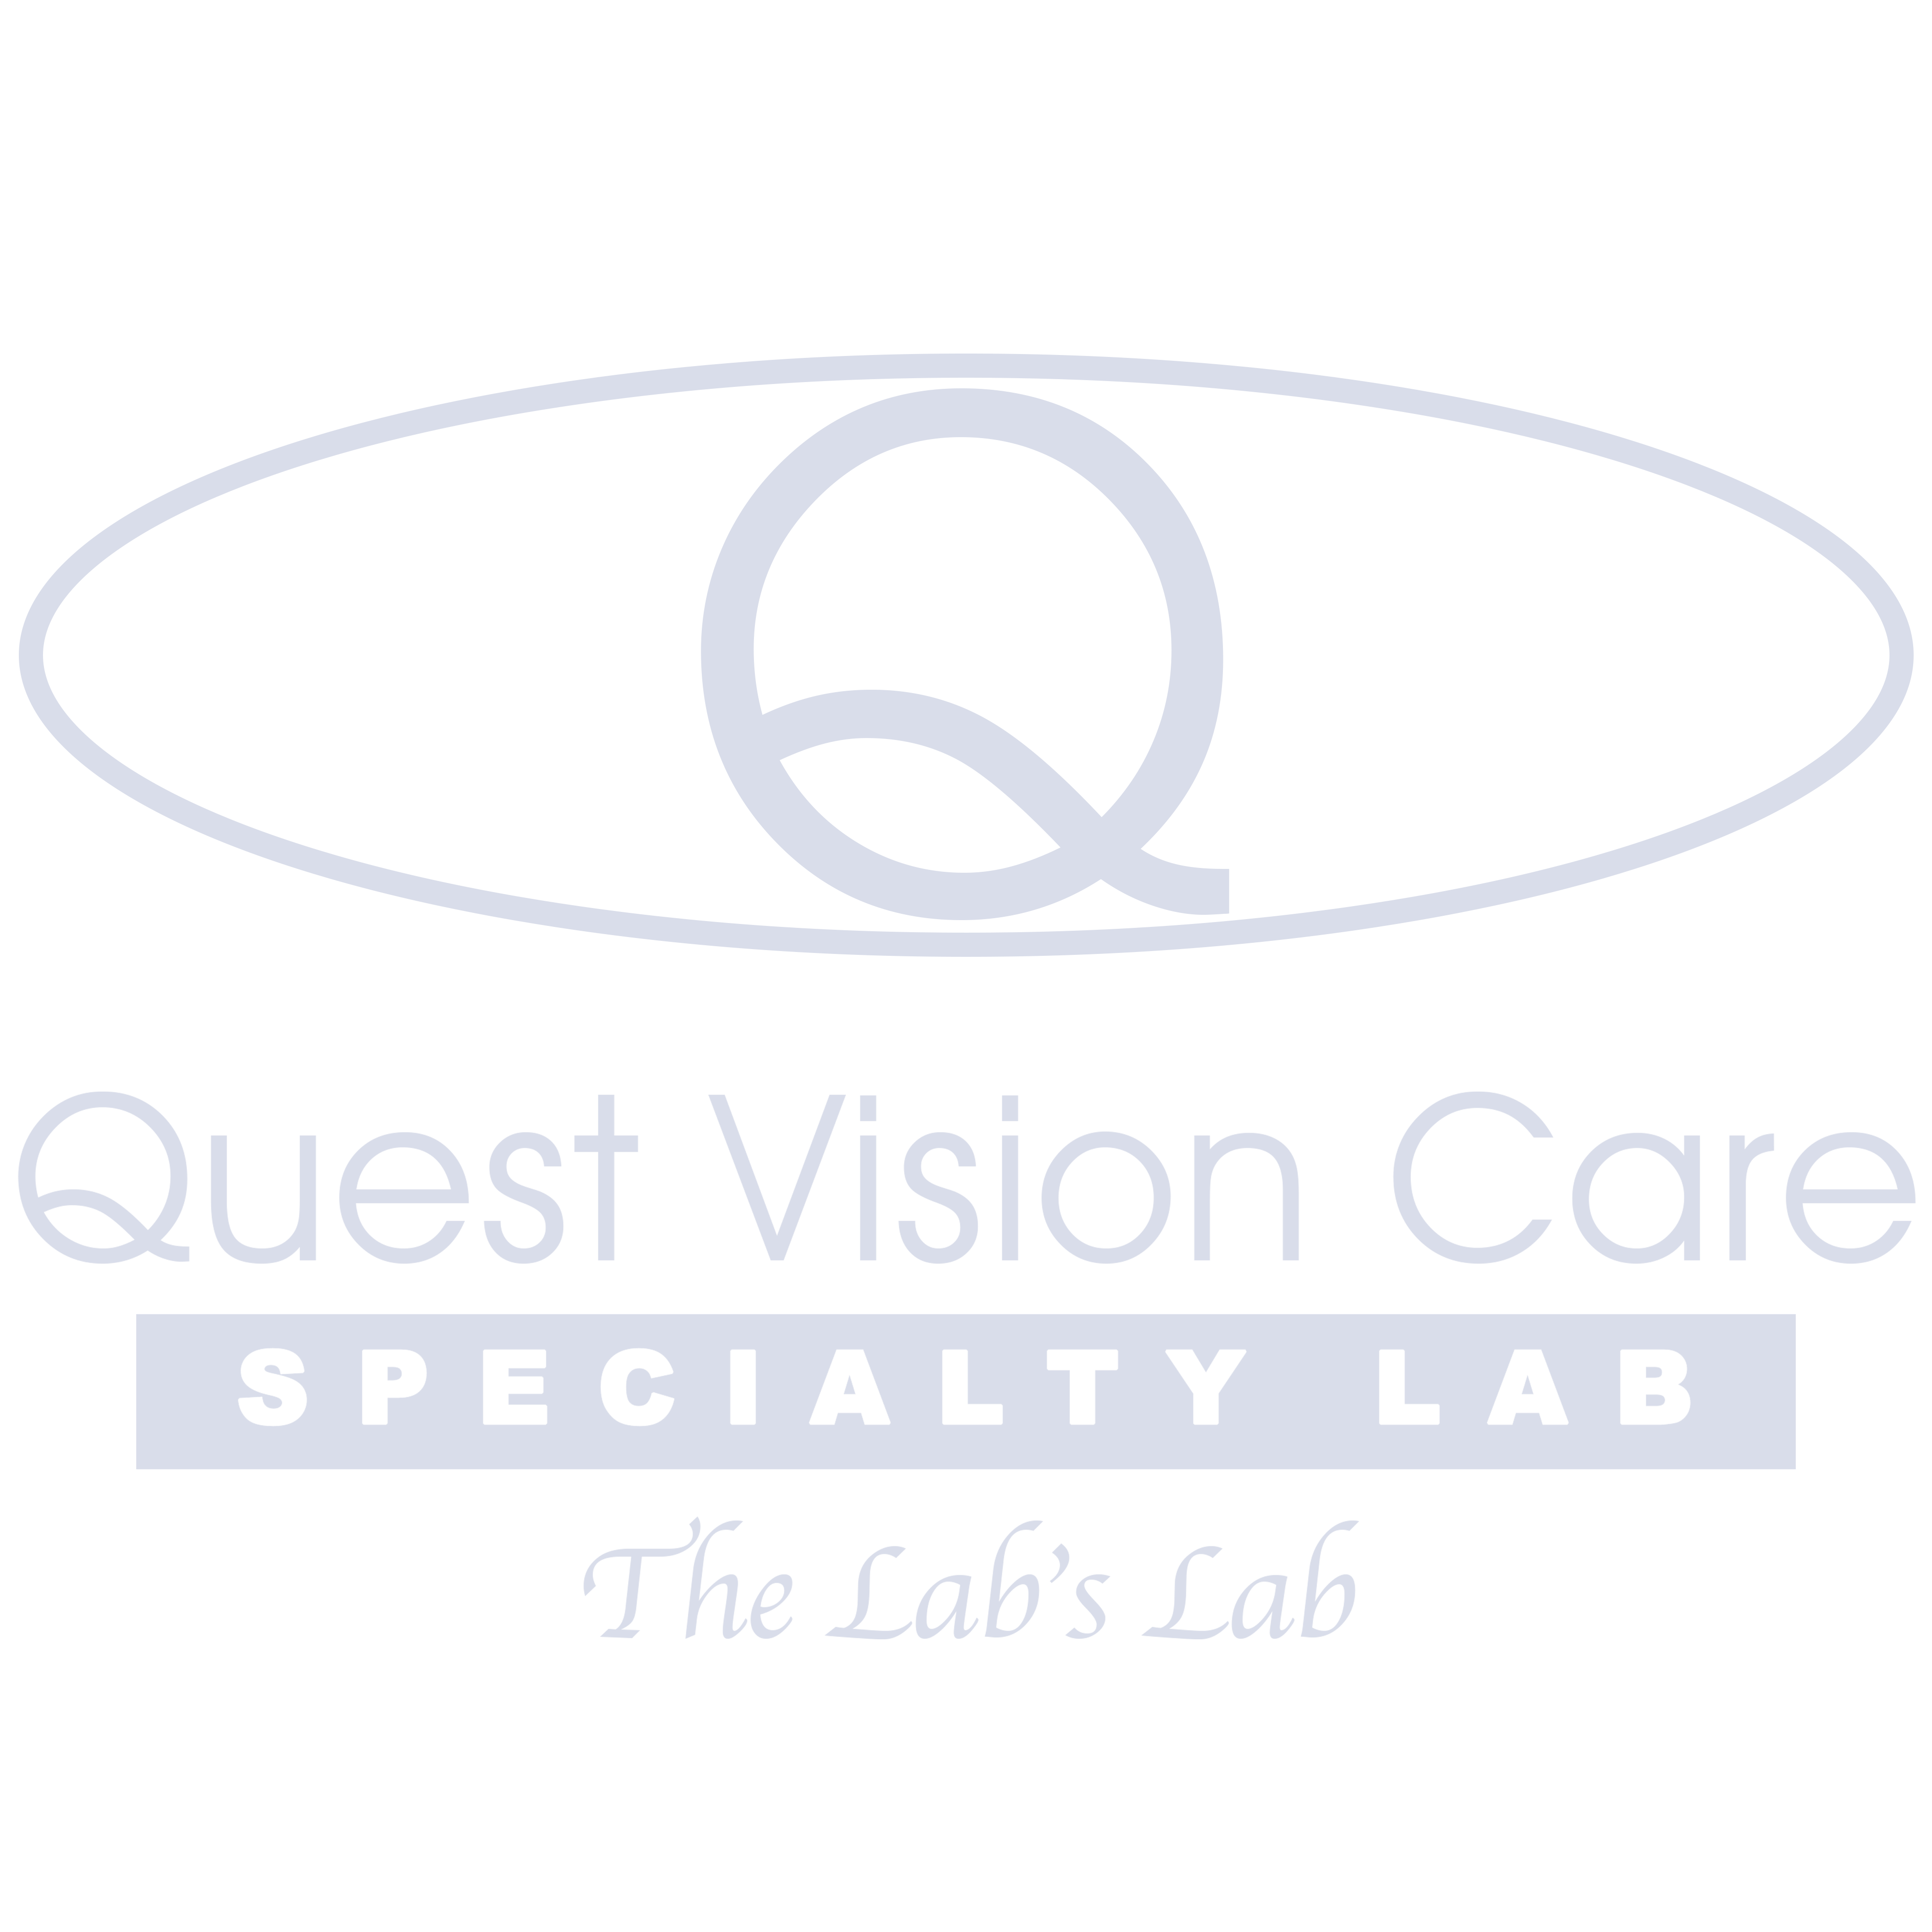 Quest Vision Care Speciality Lab